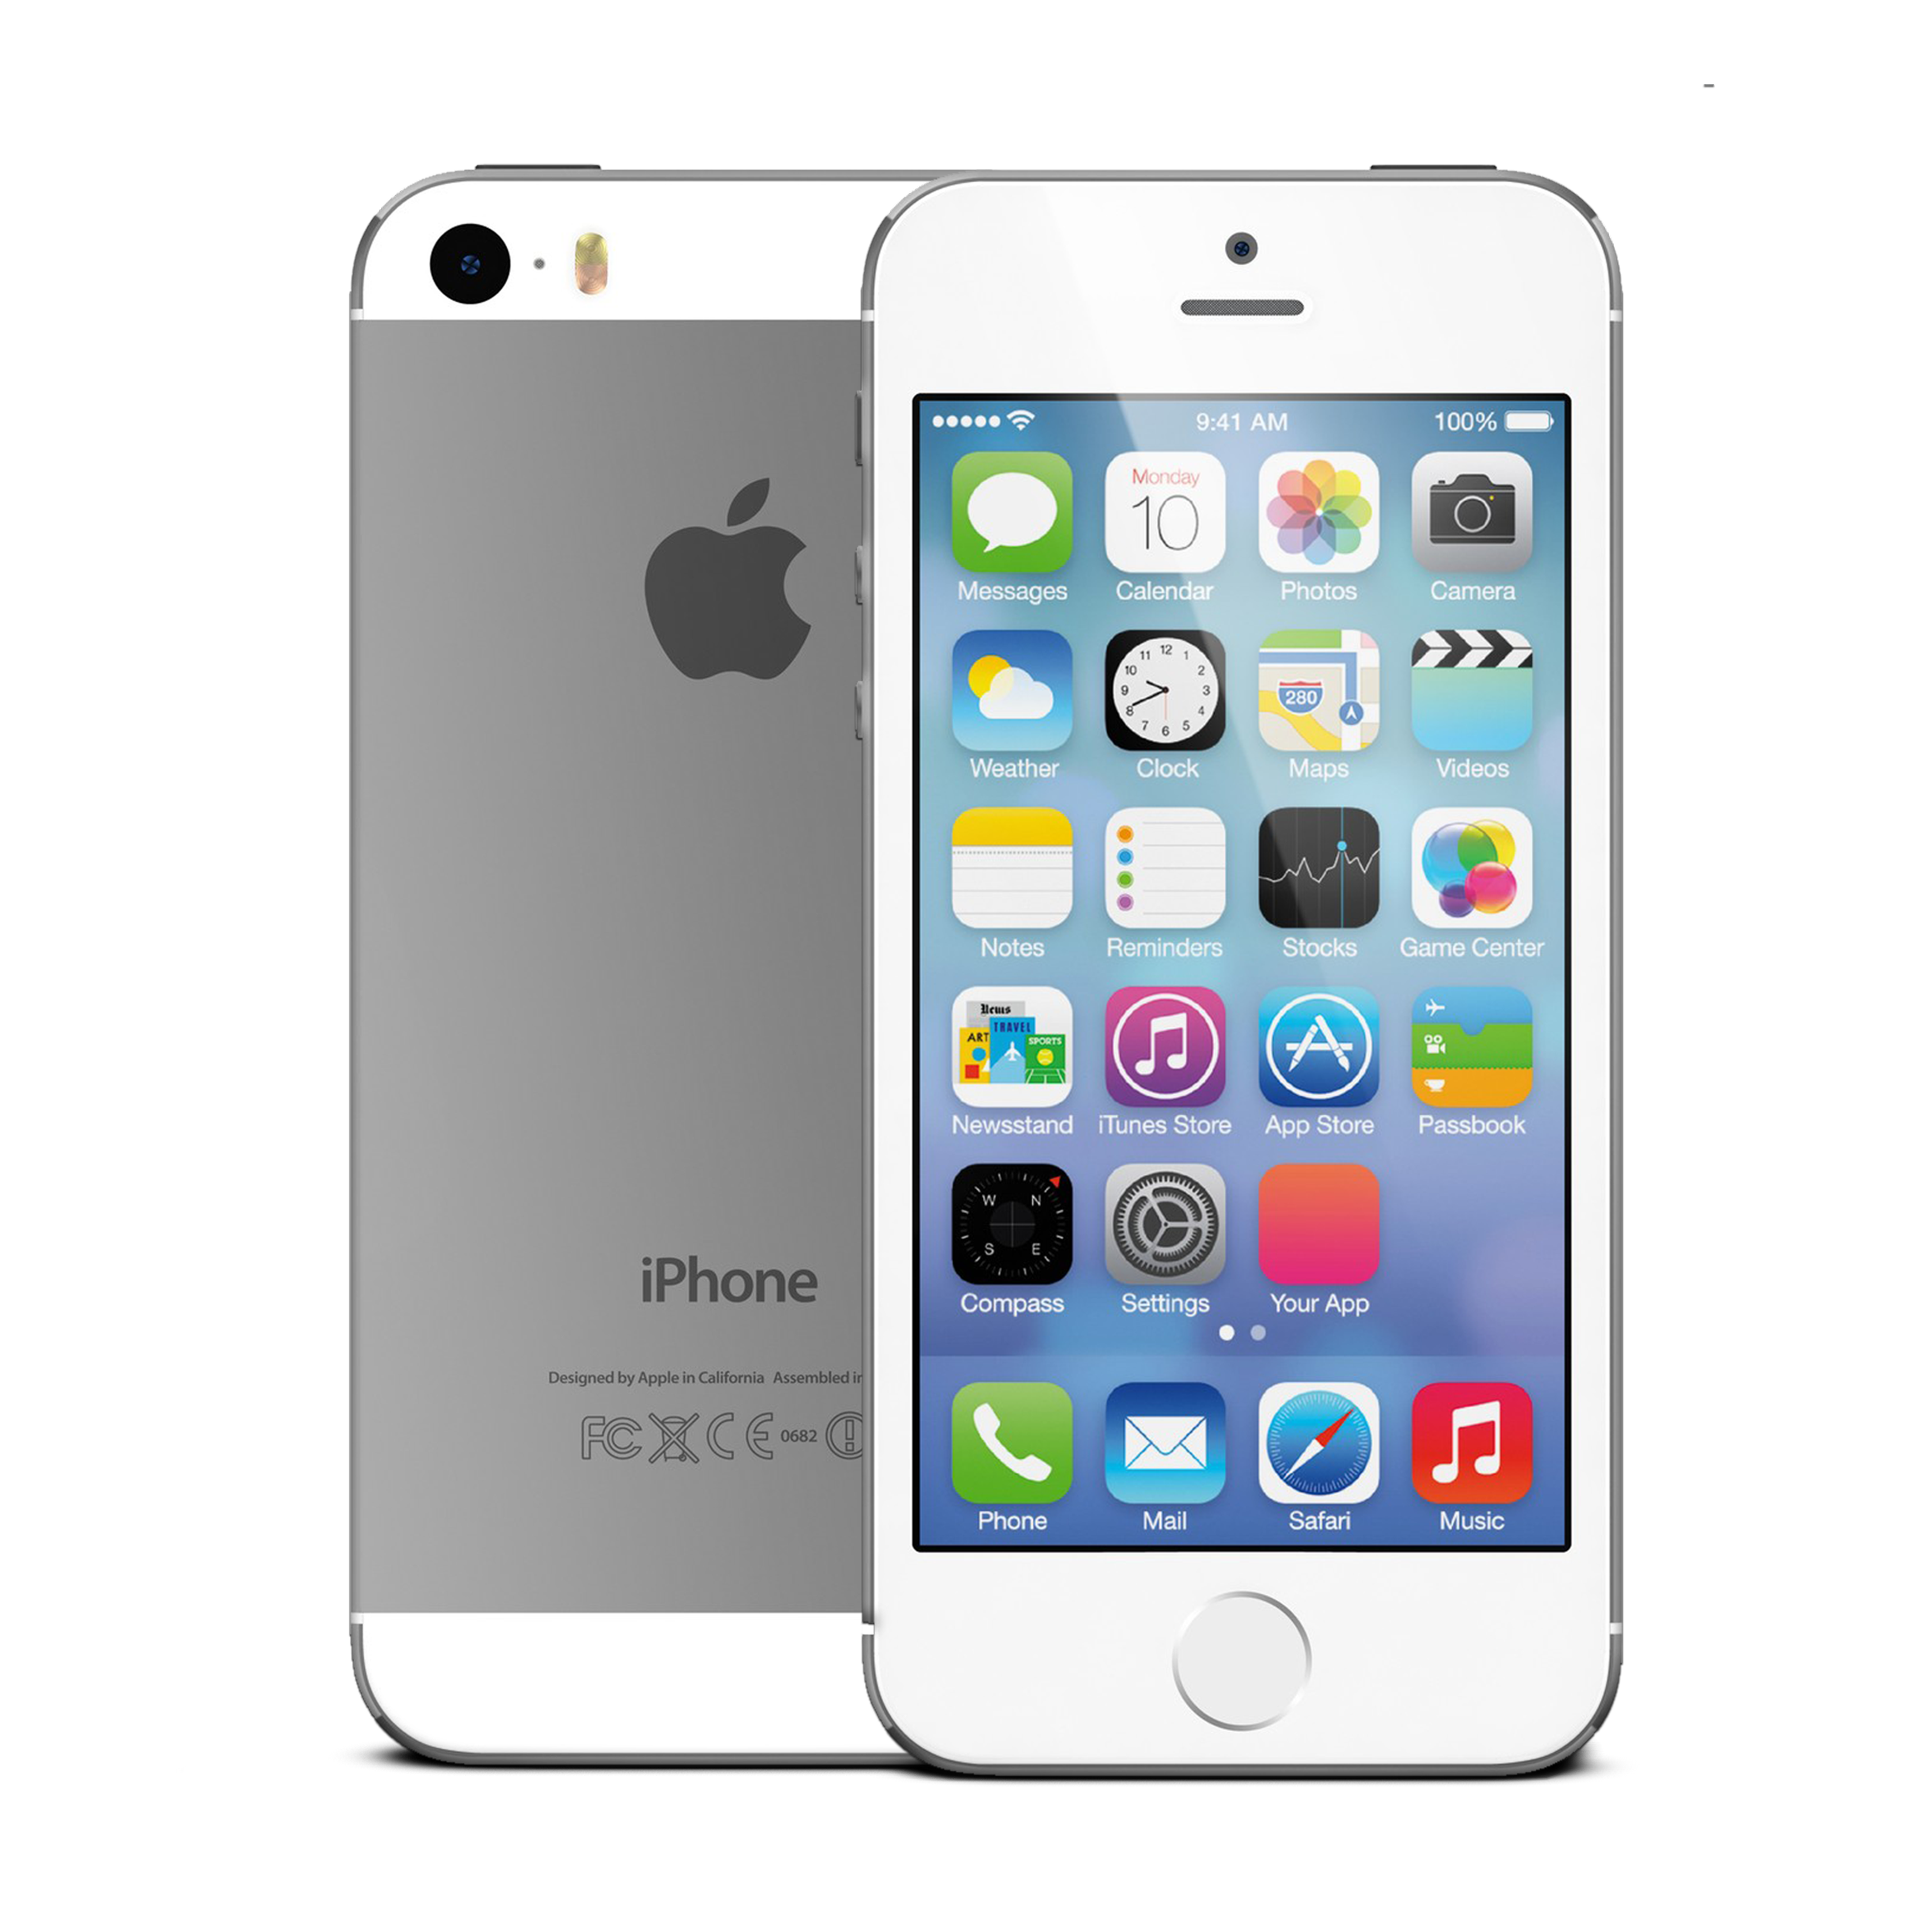 Apple iPhone 5s (1 GB/16 GB)